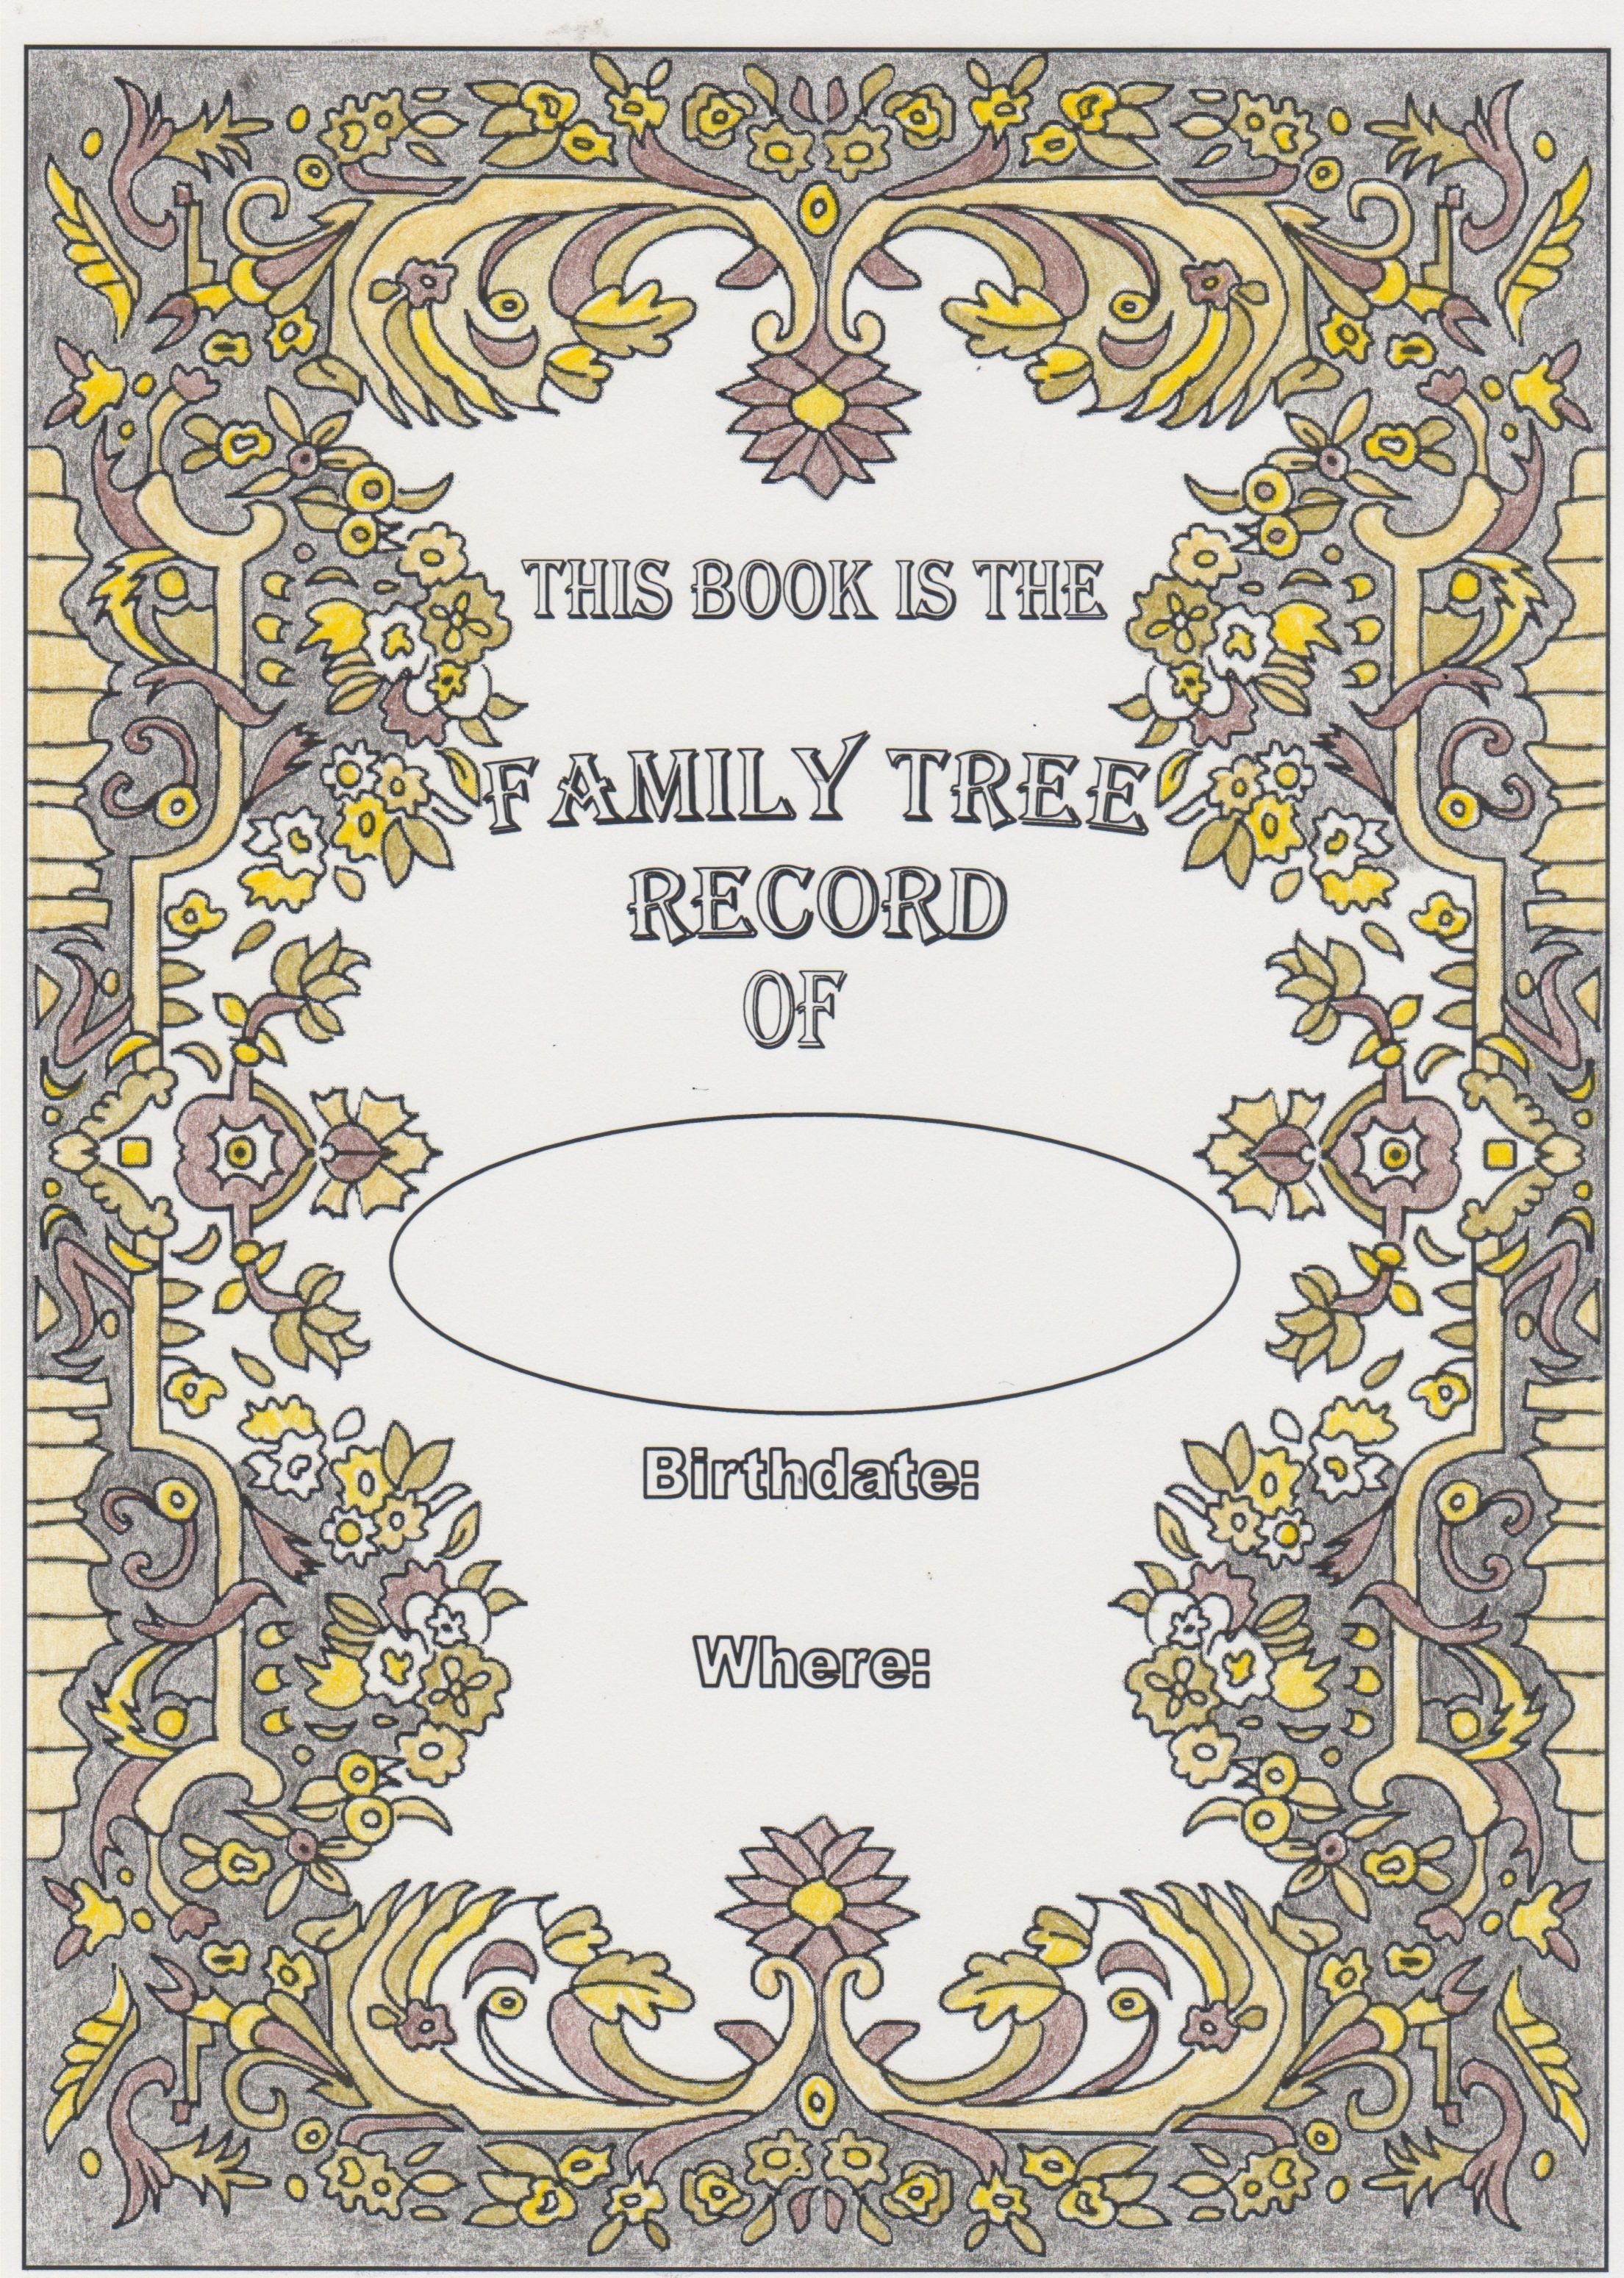 Title Page Done In Colored Pencils From Family Tree Coloring Book Coloring Books Family Tree Vintage World Maps